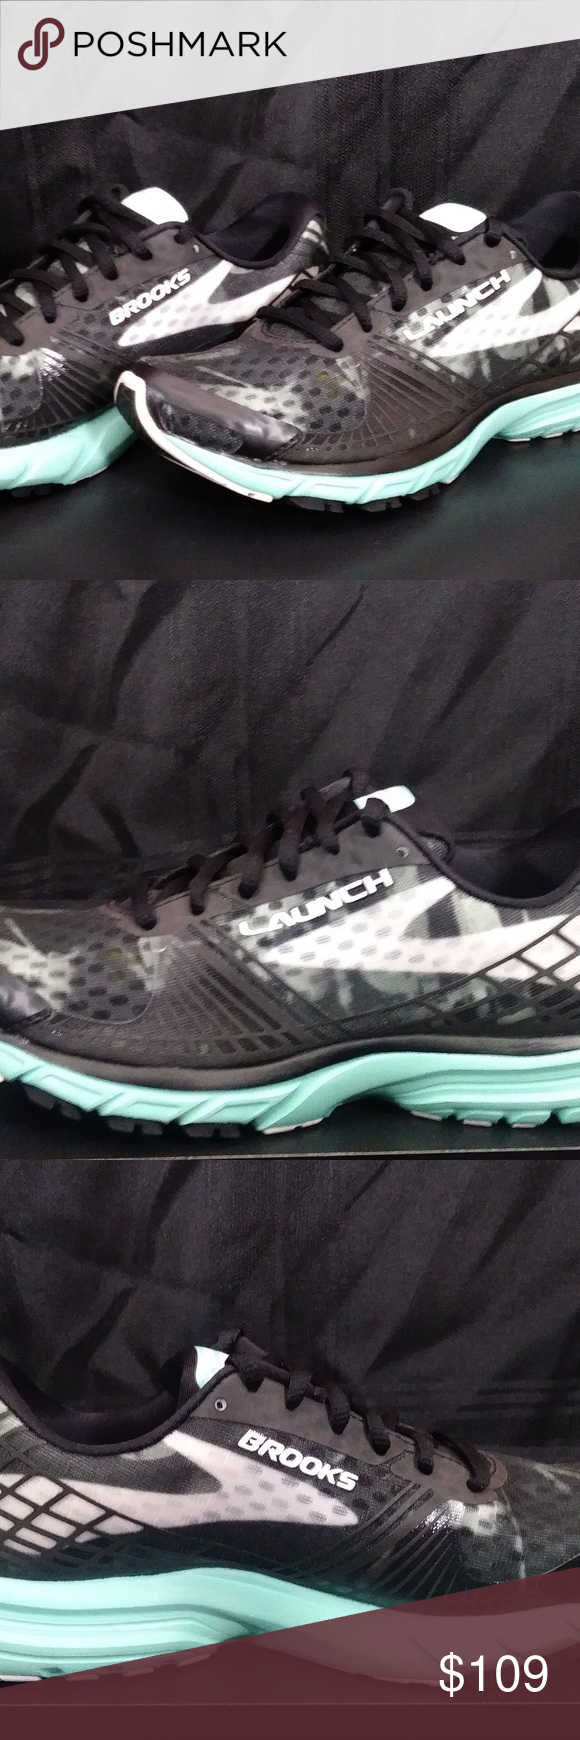 39e09df0415 Brooks Launch 3 Black White Ice Green SIZE 6.5 Liquidation Buy Brand New  from Shoe Chain - New in Box - Some shoes may have been tried on